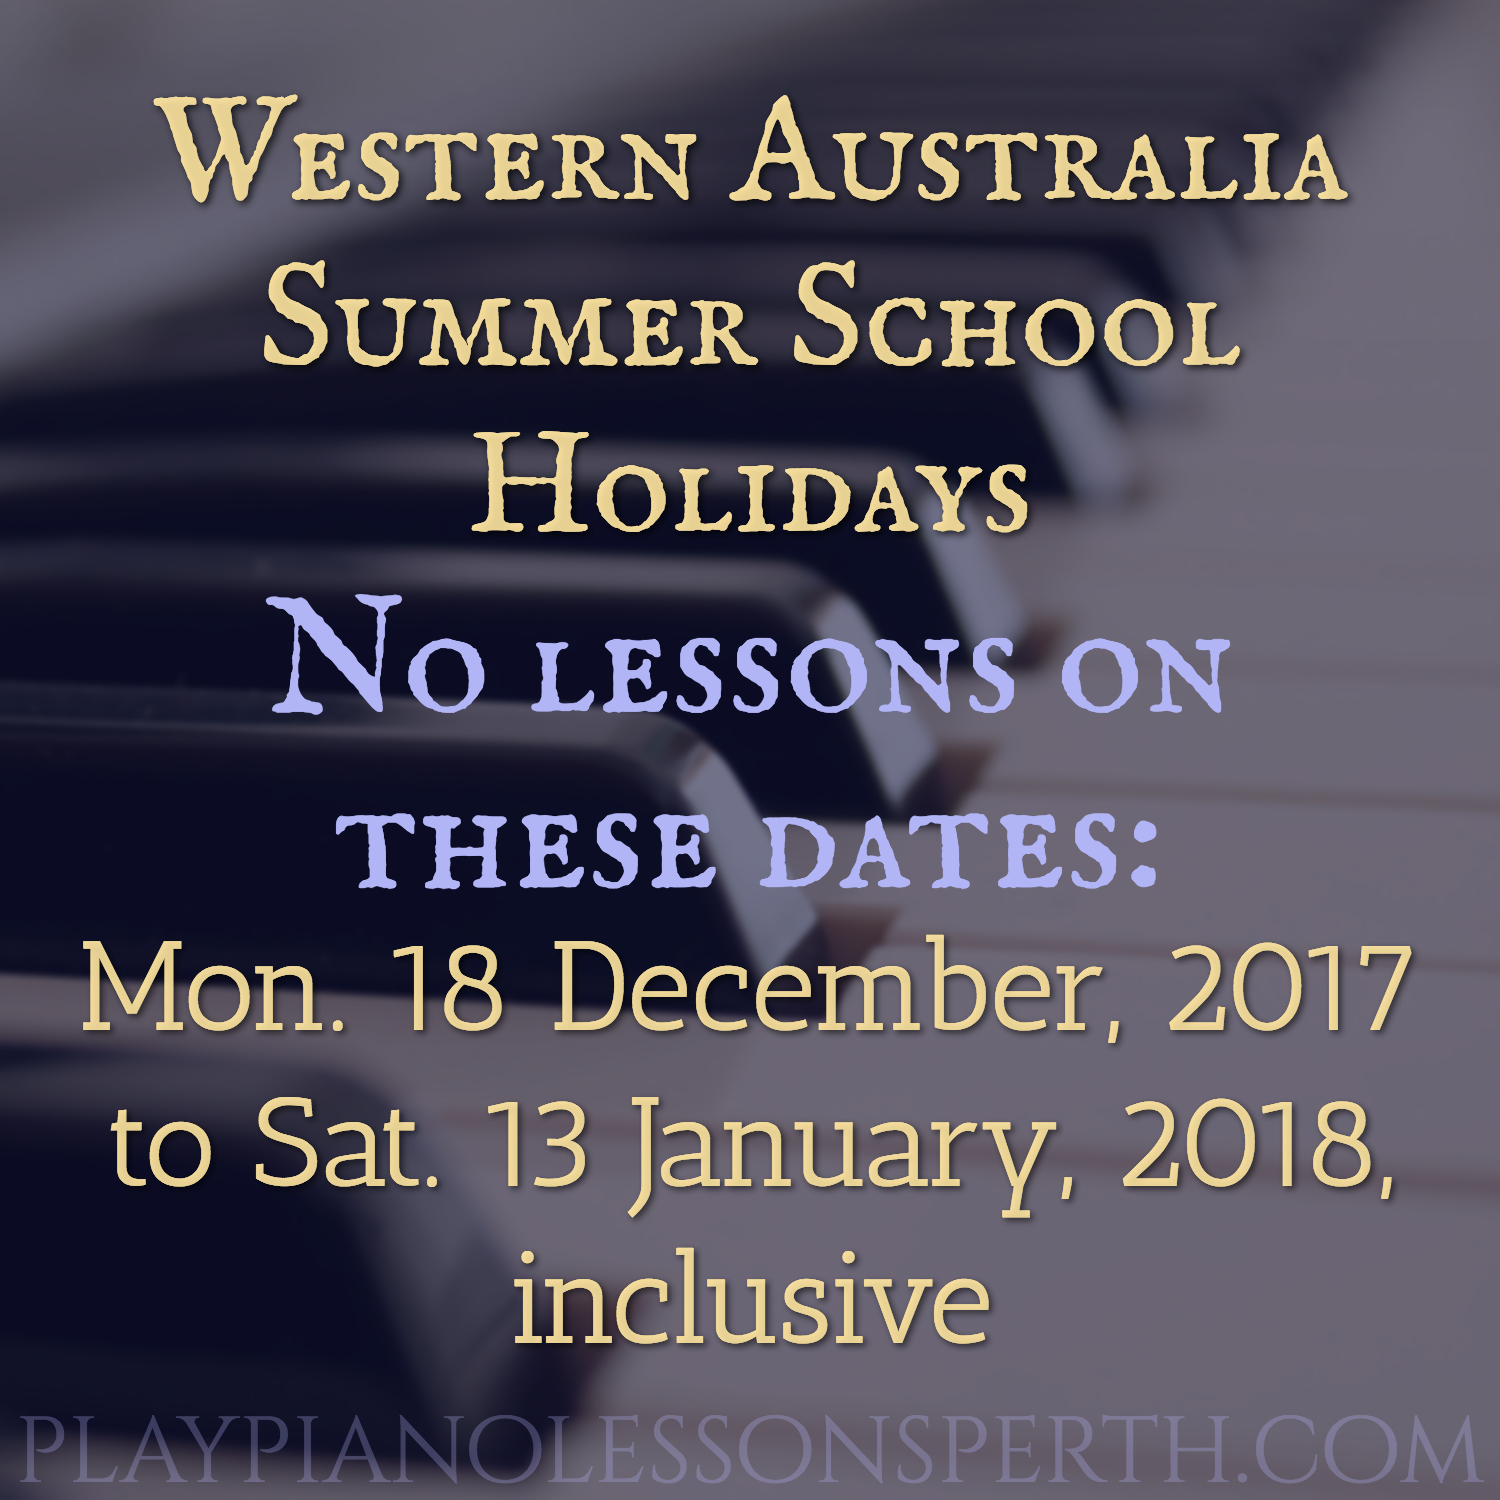 Play Piano Lessons Perth Summer School Holidays 2017 and 2018